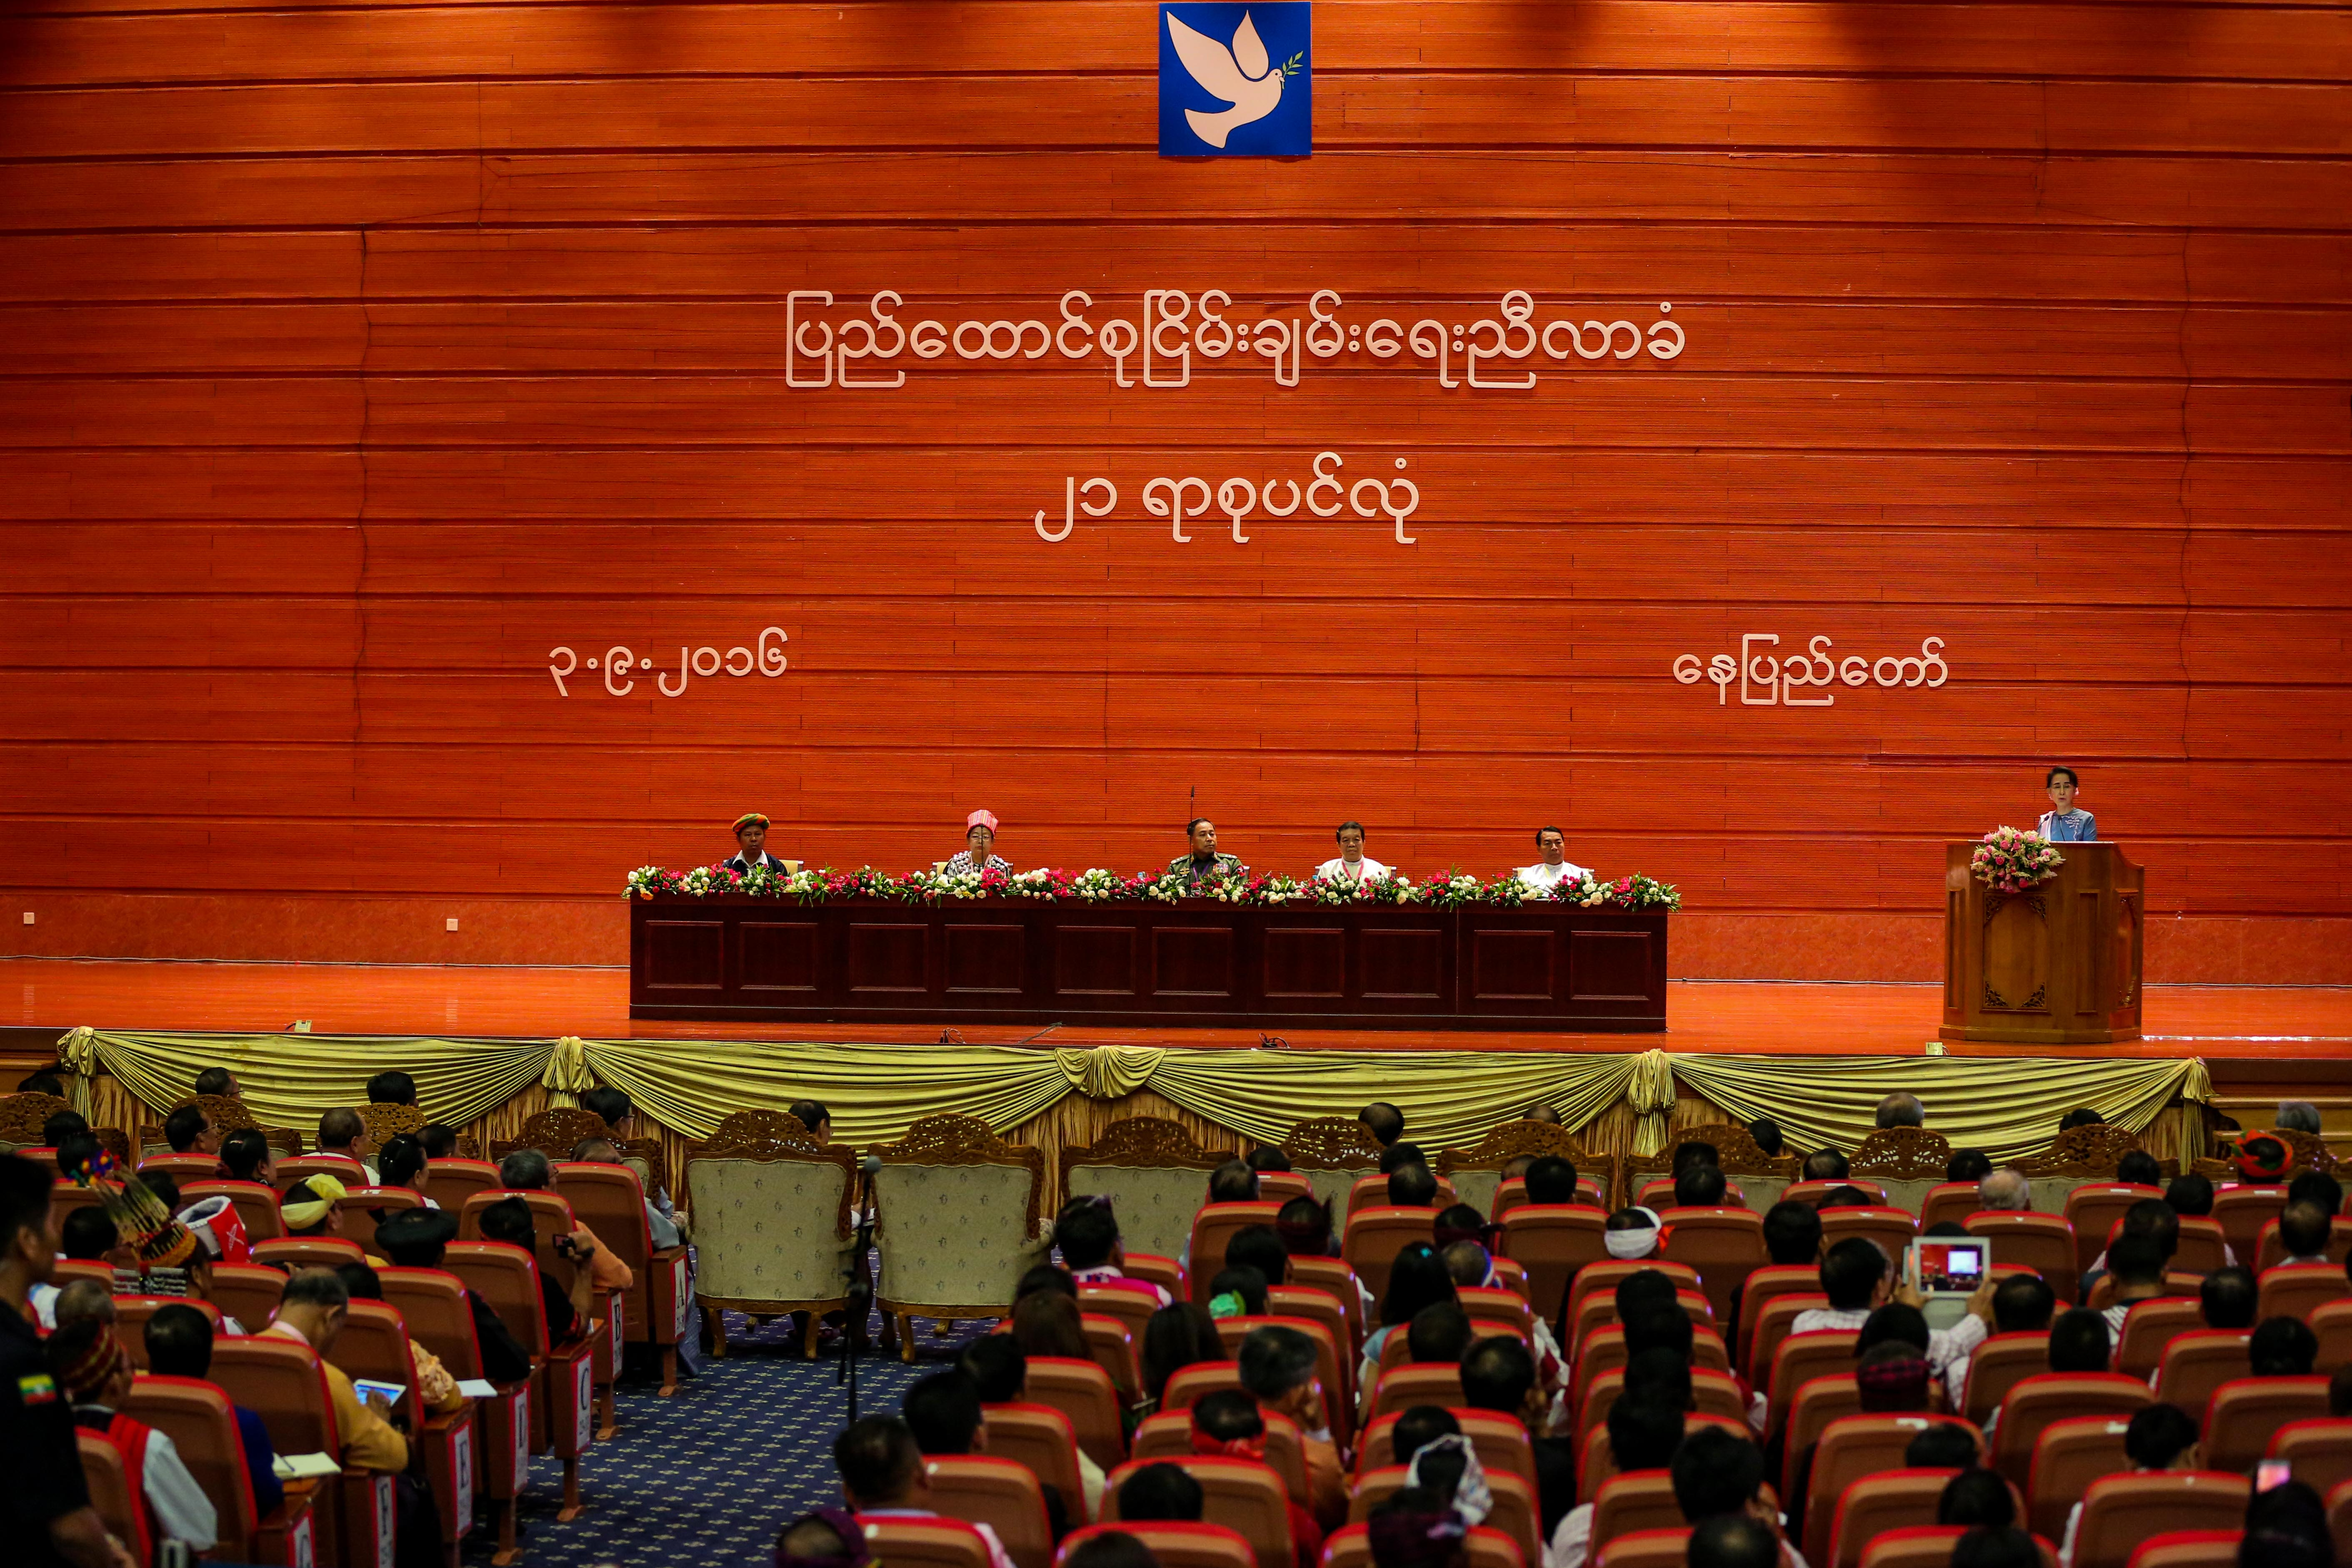 State Counselor Daw Aung San Suu Kyi delivers a closing address at the 21st Century Panglong peace conference on Sept 3 this year. (Photo: Pyay Kyaw / The Irrawaddy)